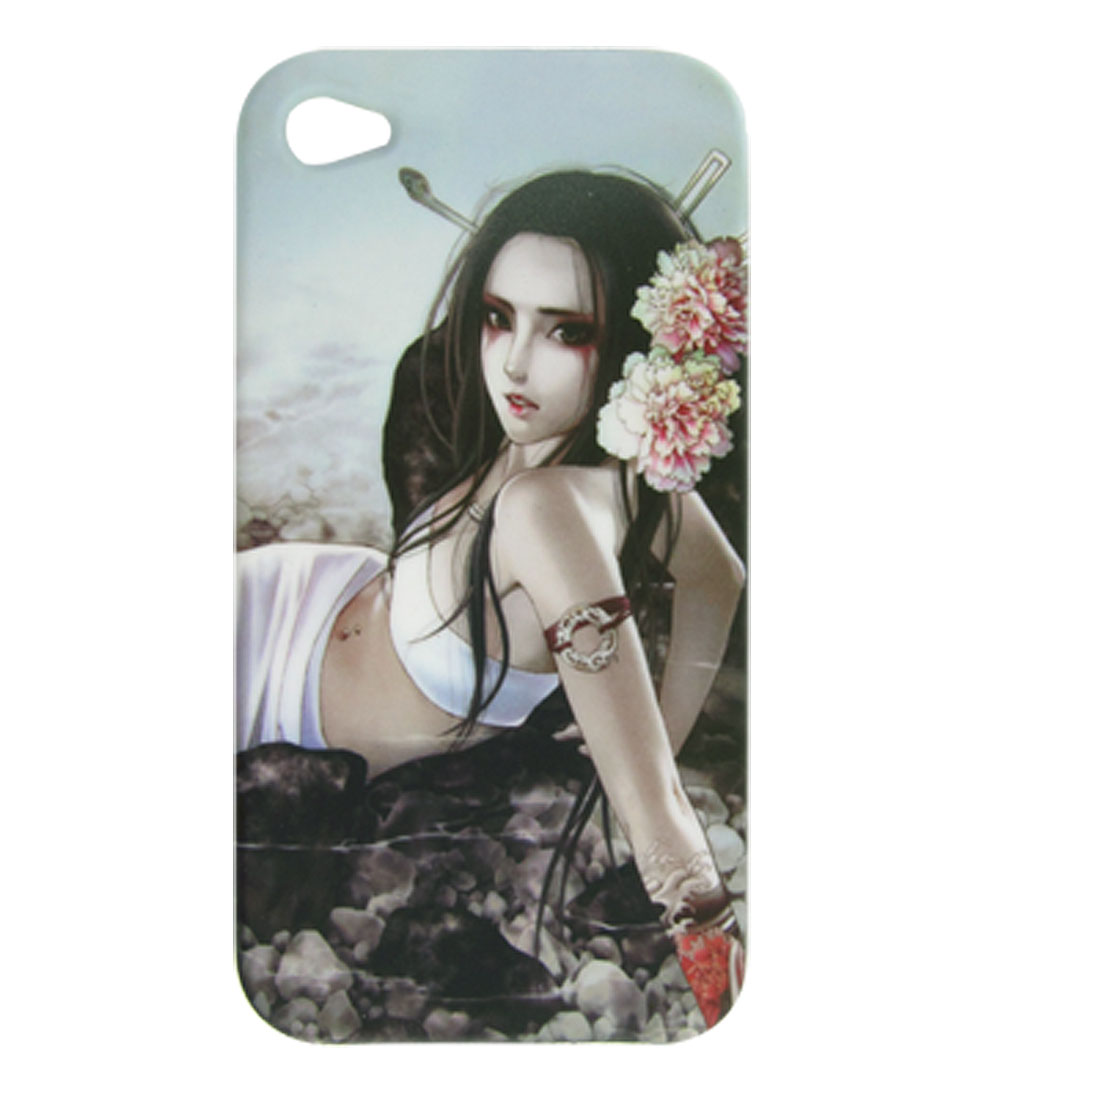 Succubae Design Soft Plastic Back Case for iPhone 4 4G